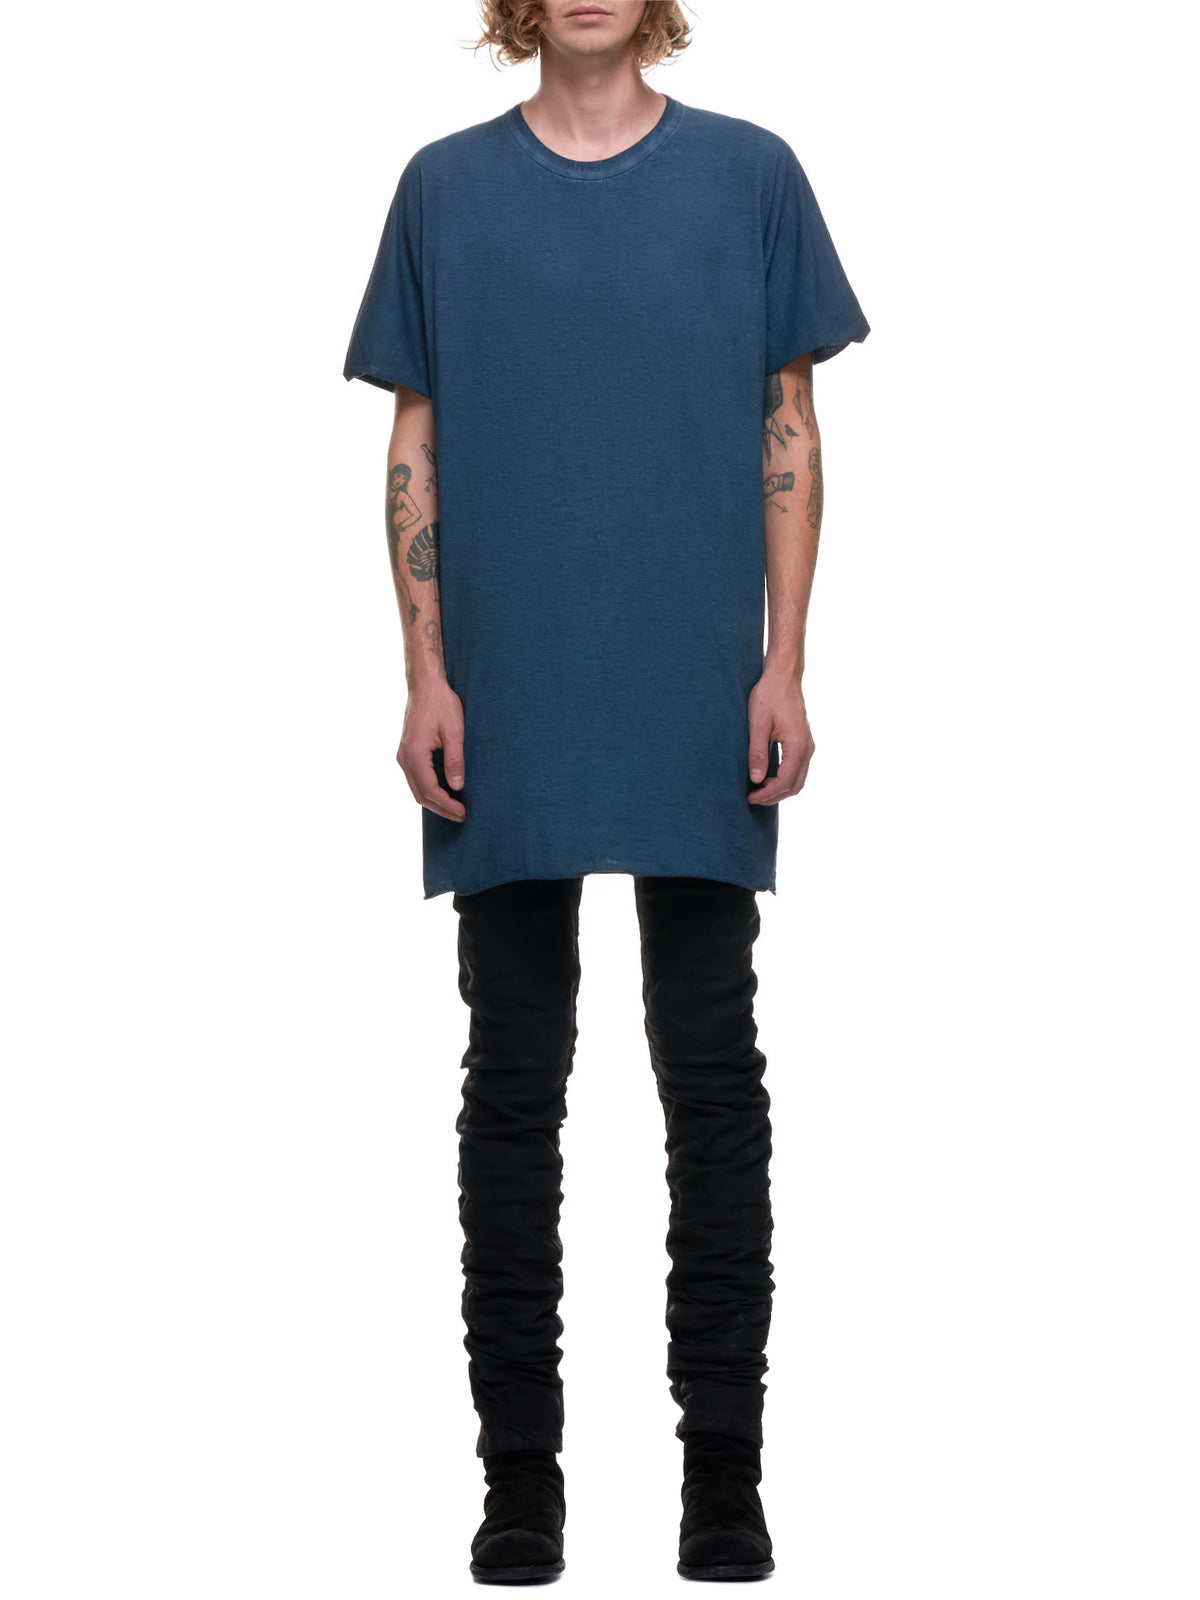 Faded Synth Resin Dyed T-Shirt (ONE-PIECE-TS-RF-F035-FADED-BLU)